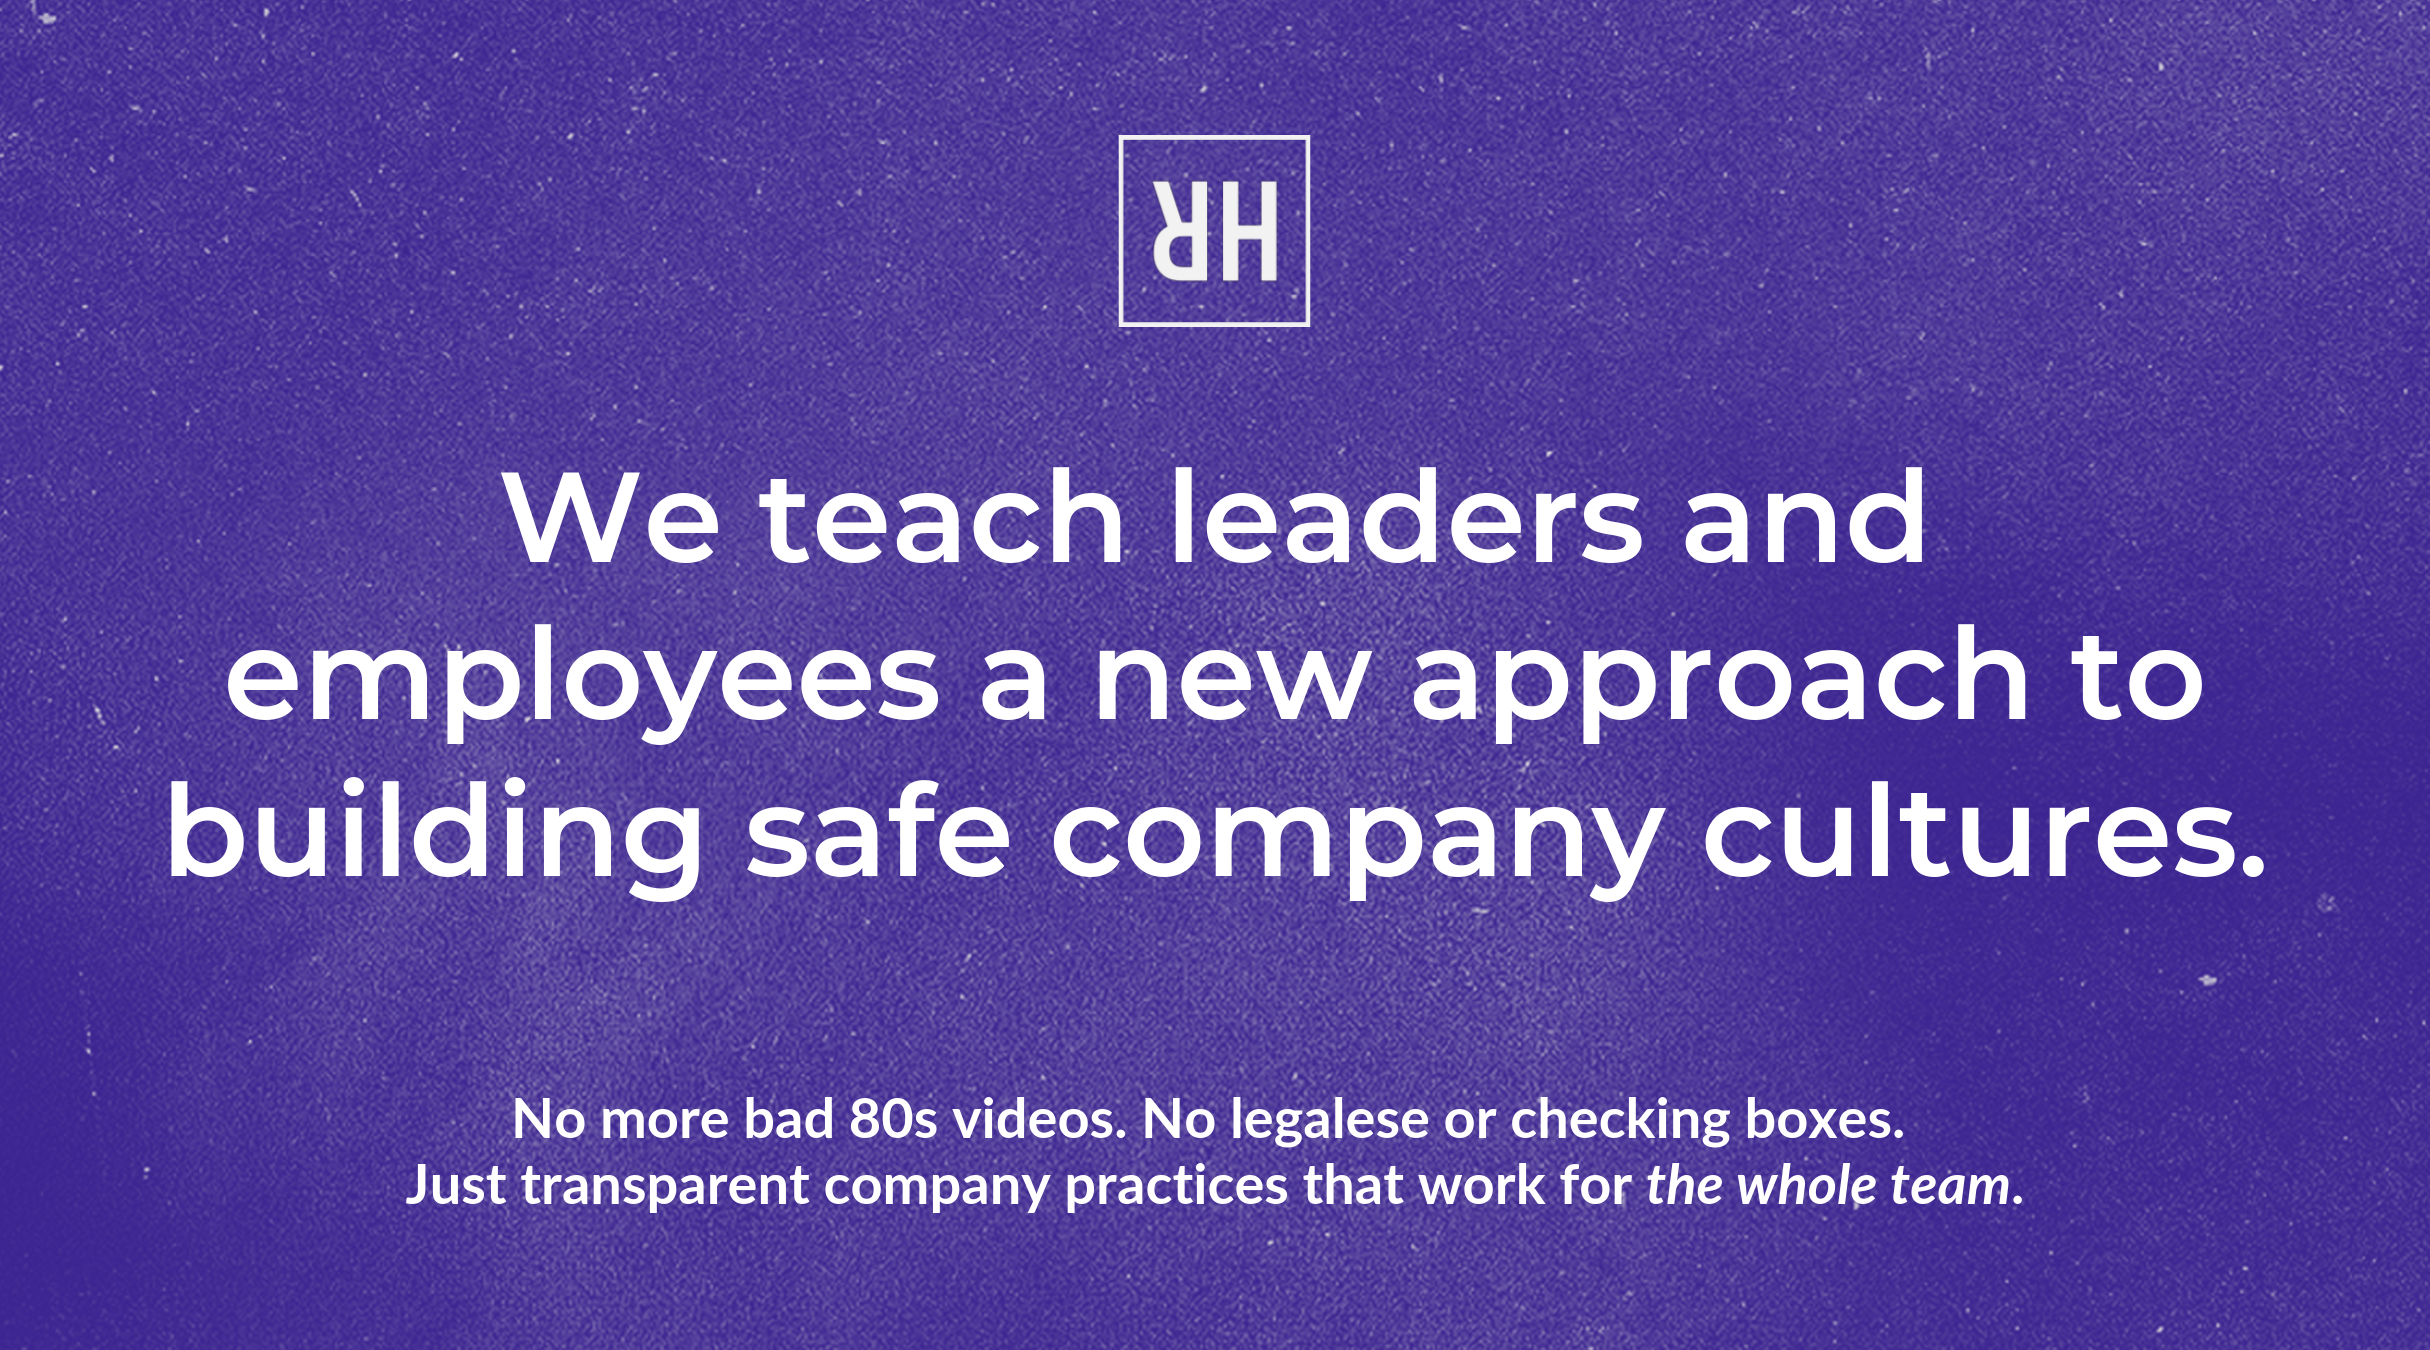 We teach leaders and employees a new approach to building safe company cultures. (2).png